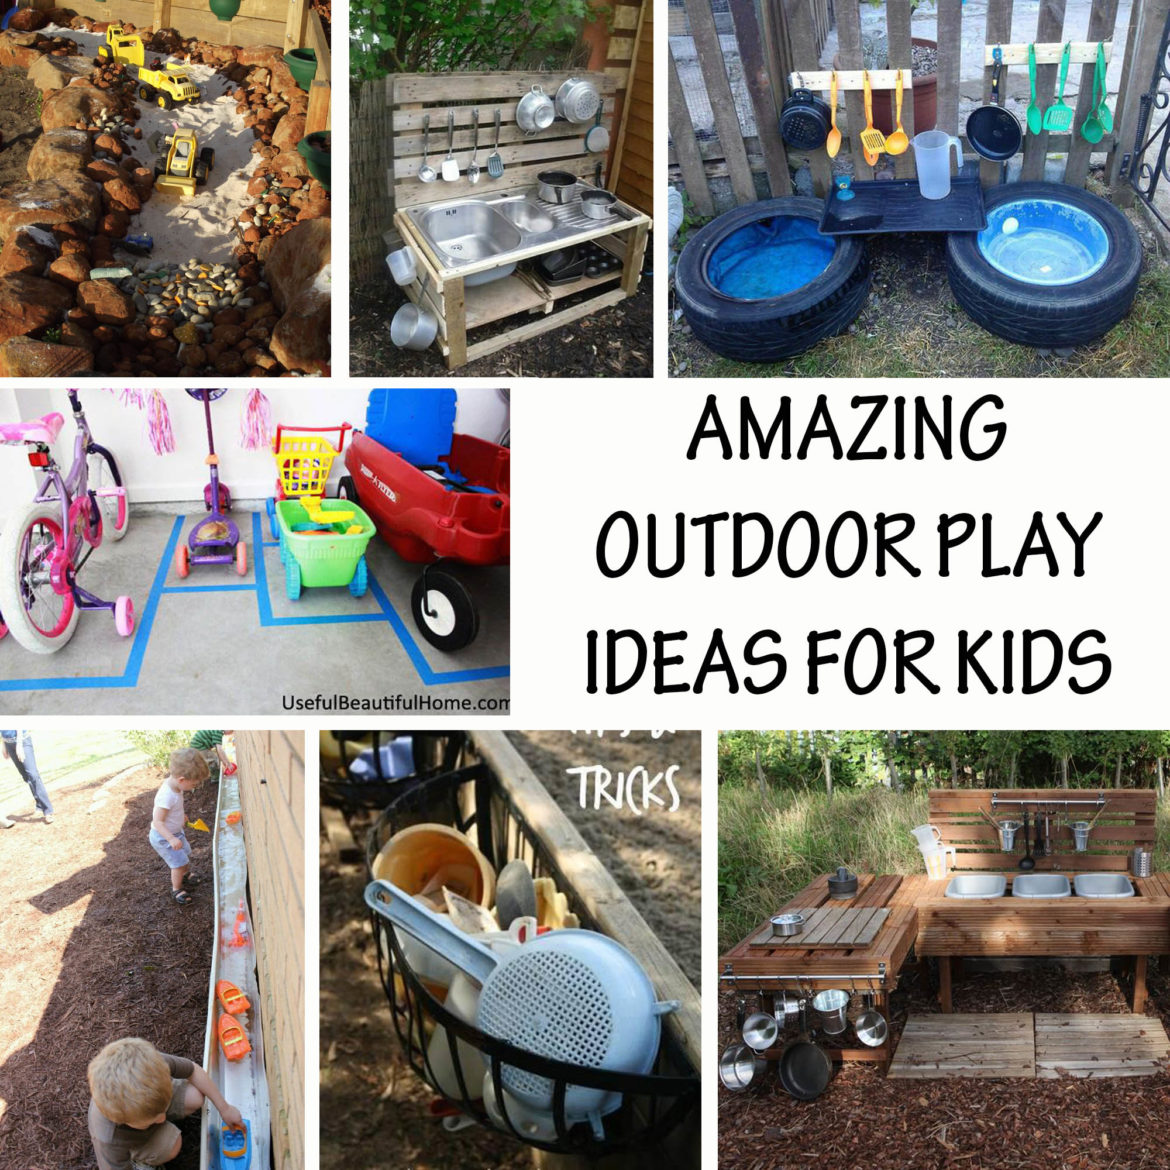 KIDS OUTDOOR PLAY IDEAS - The Keeper of the Cheerios